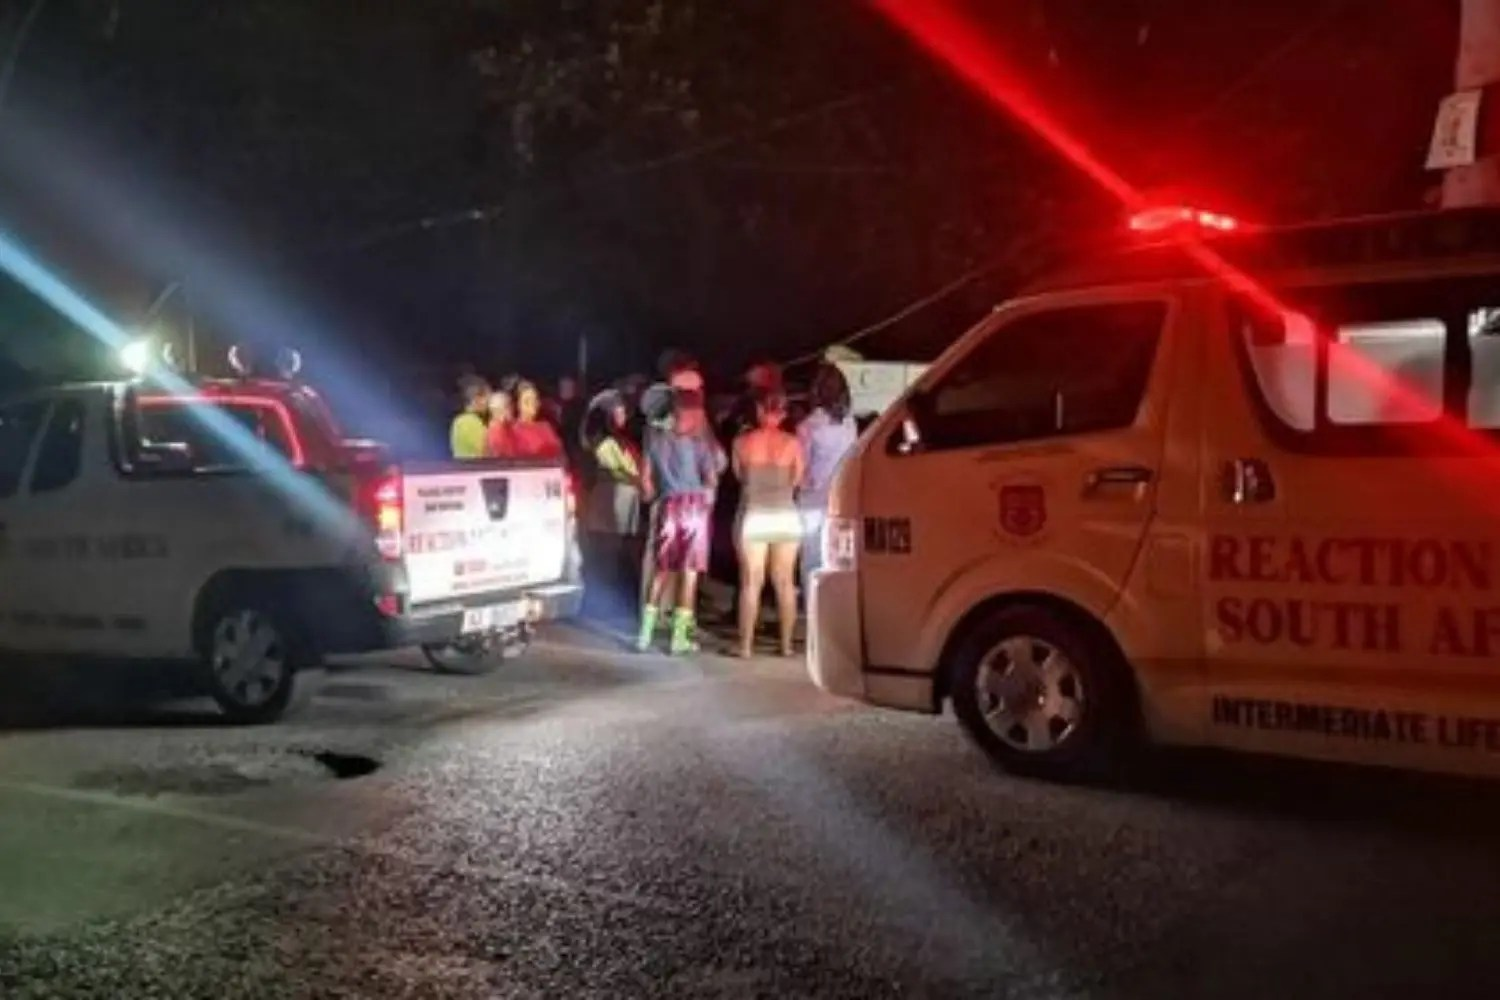 Trip to shebeen in KZN turns deadly